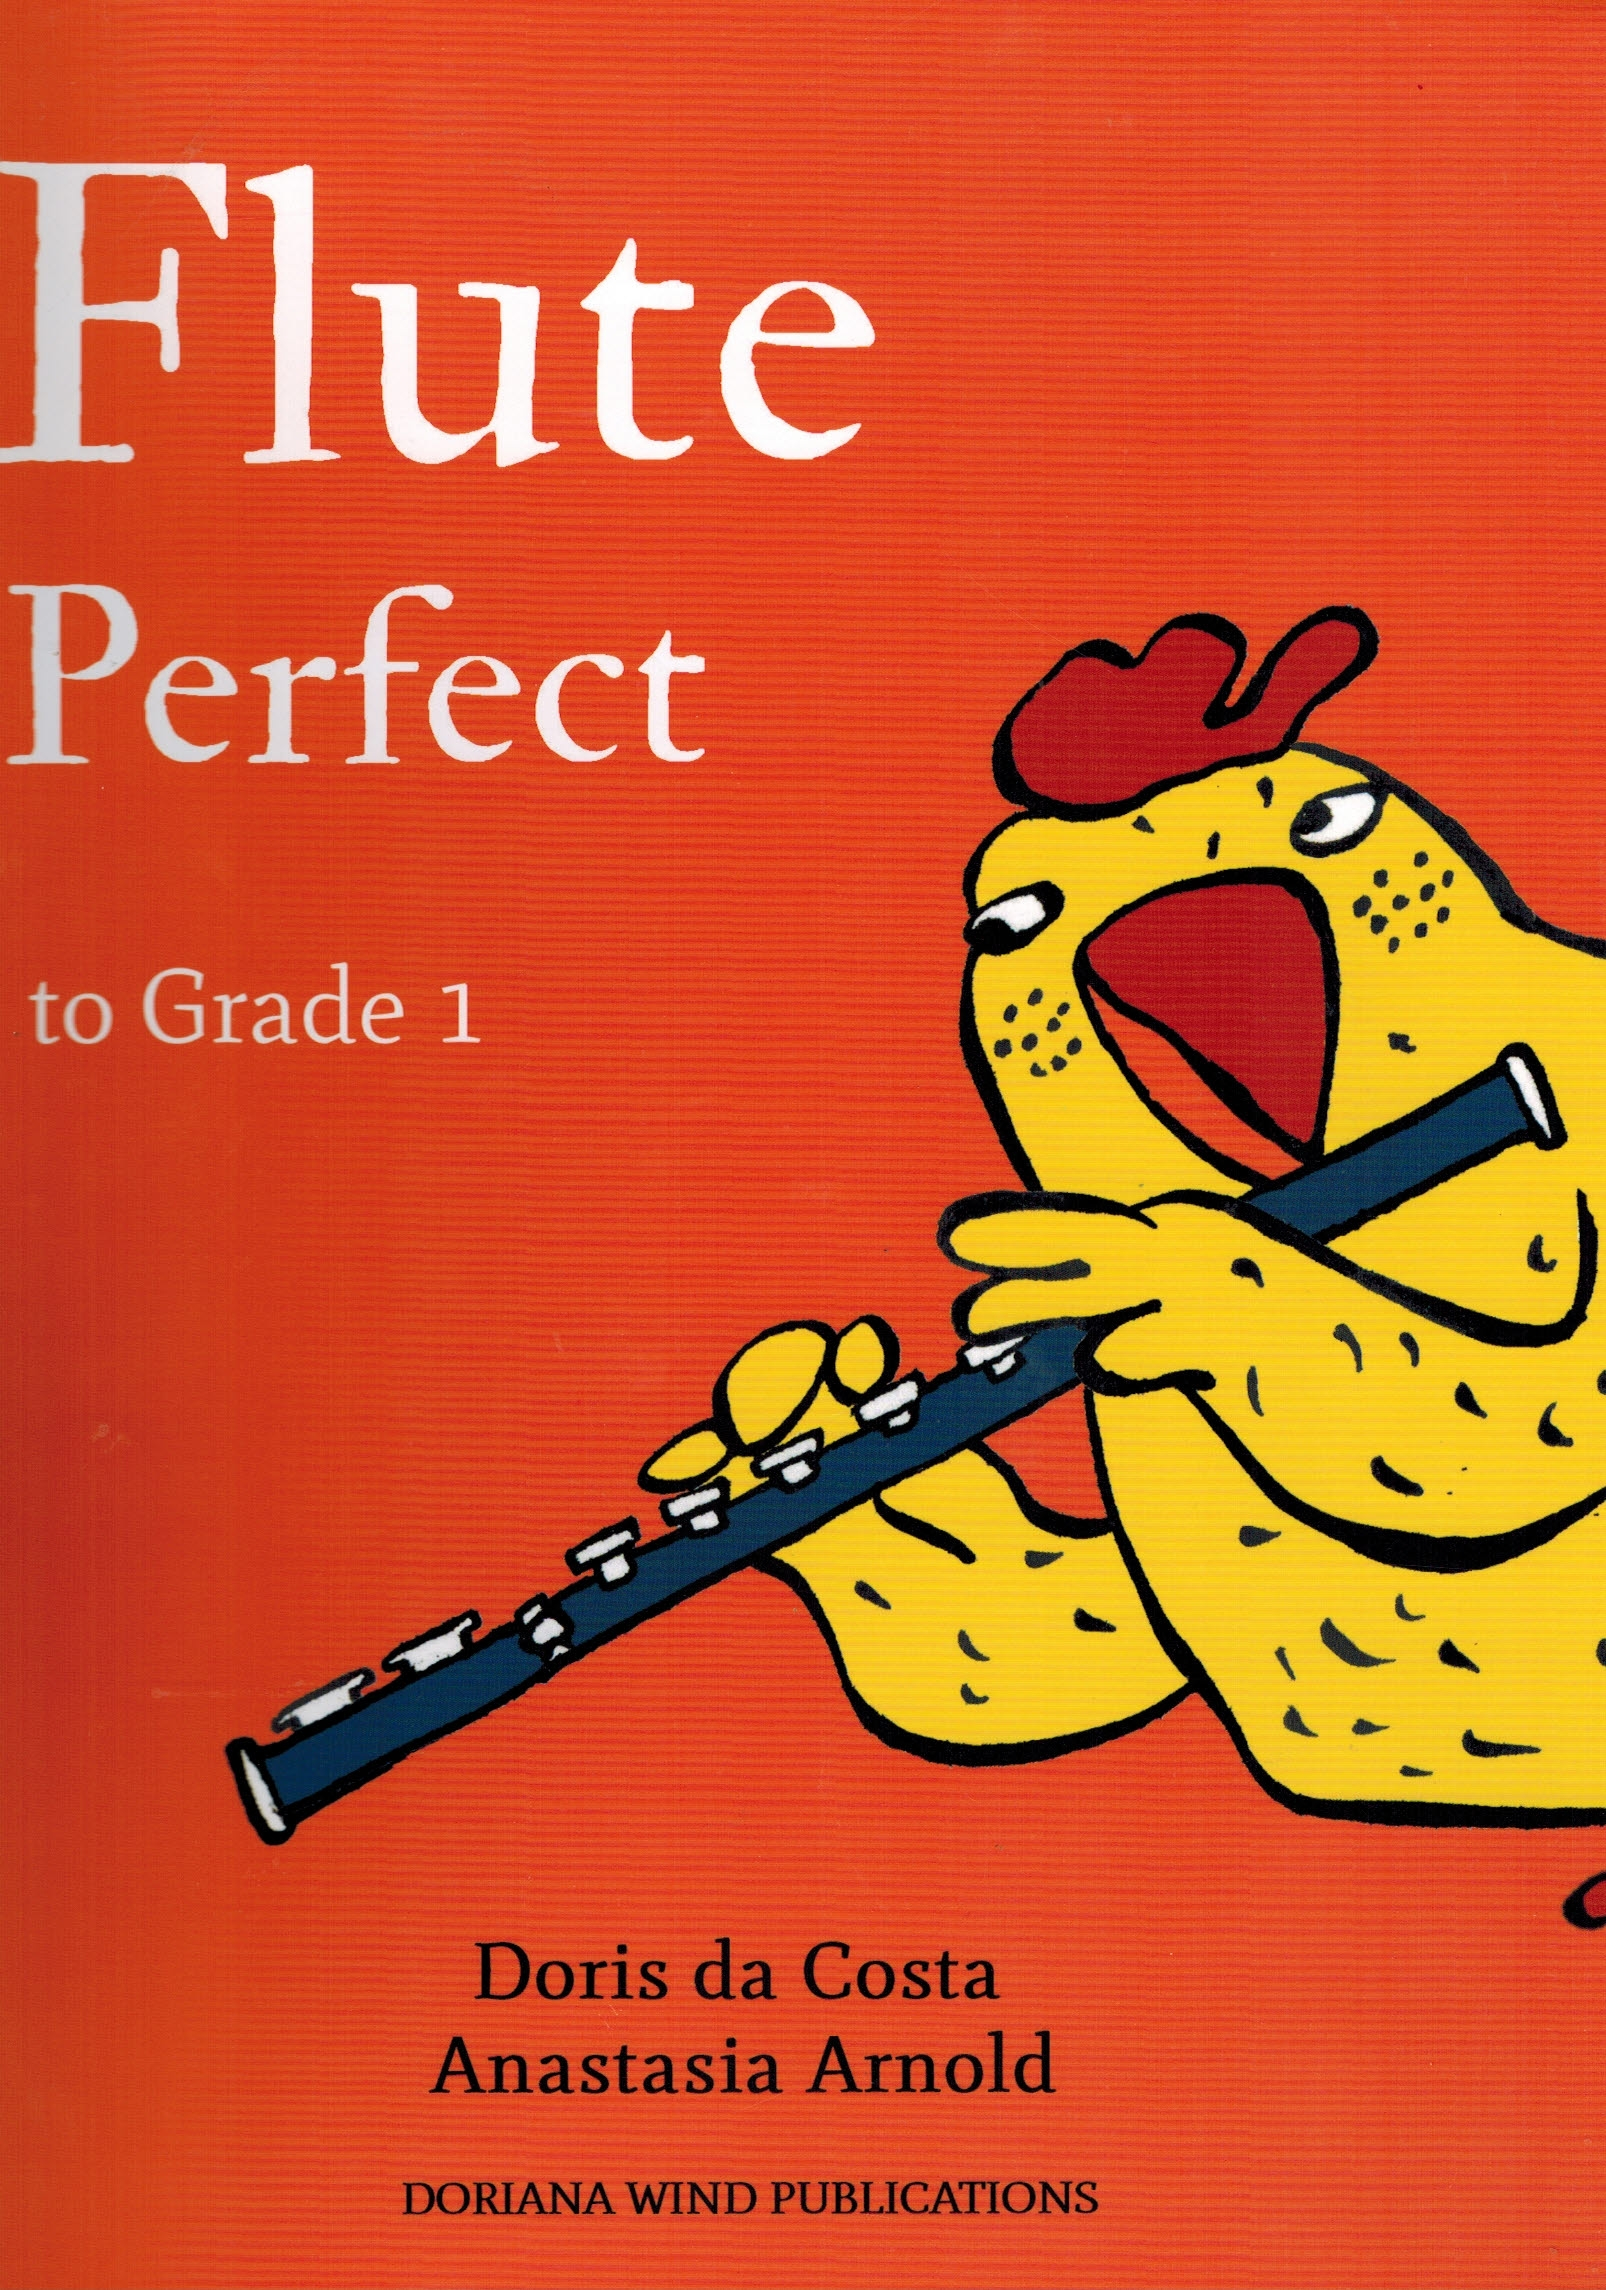 Flute Perfect - Cover